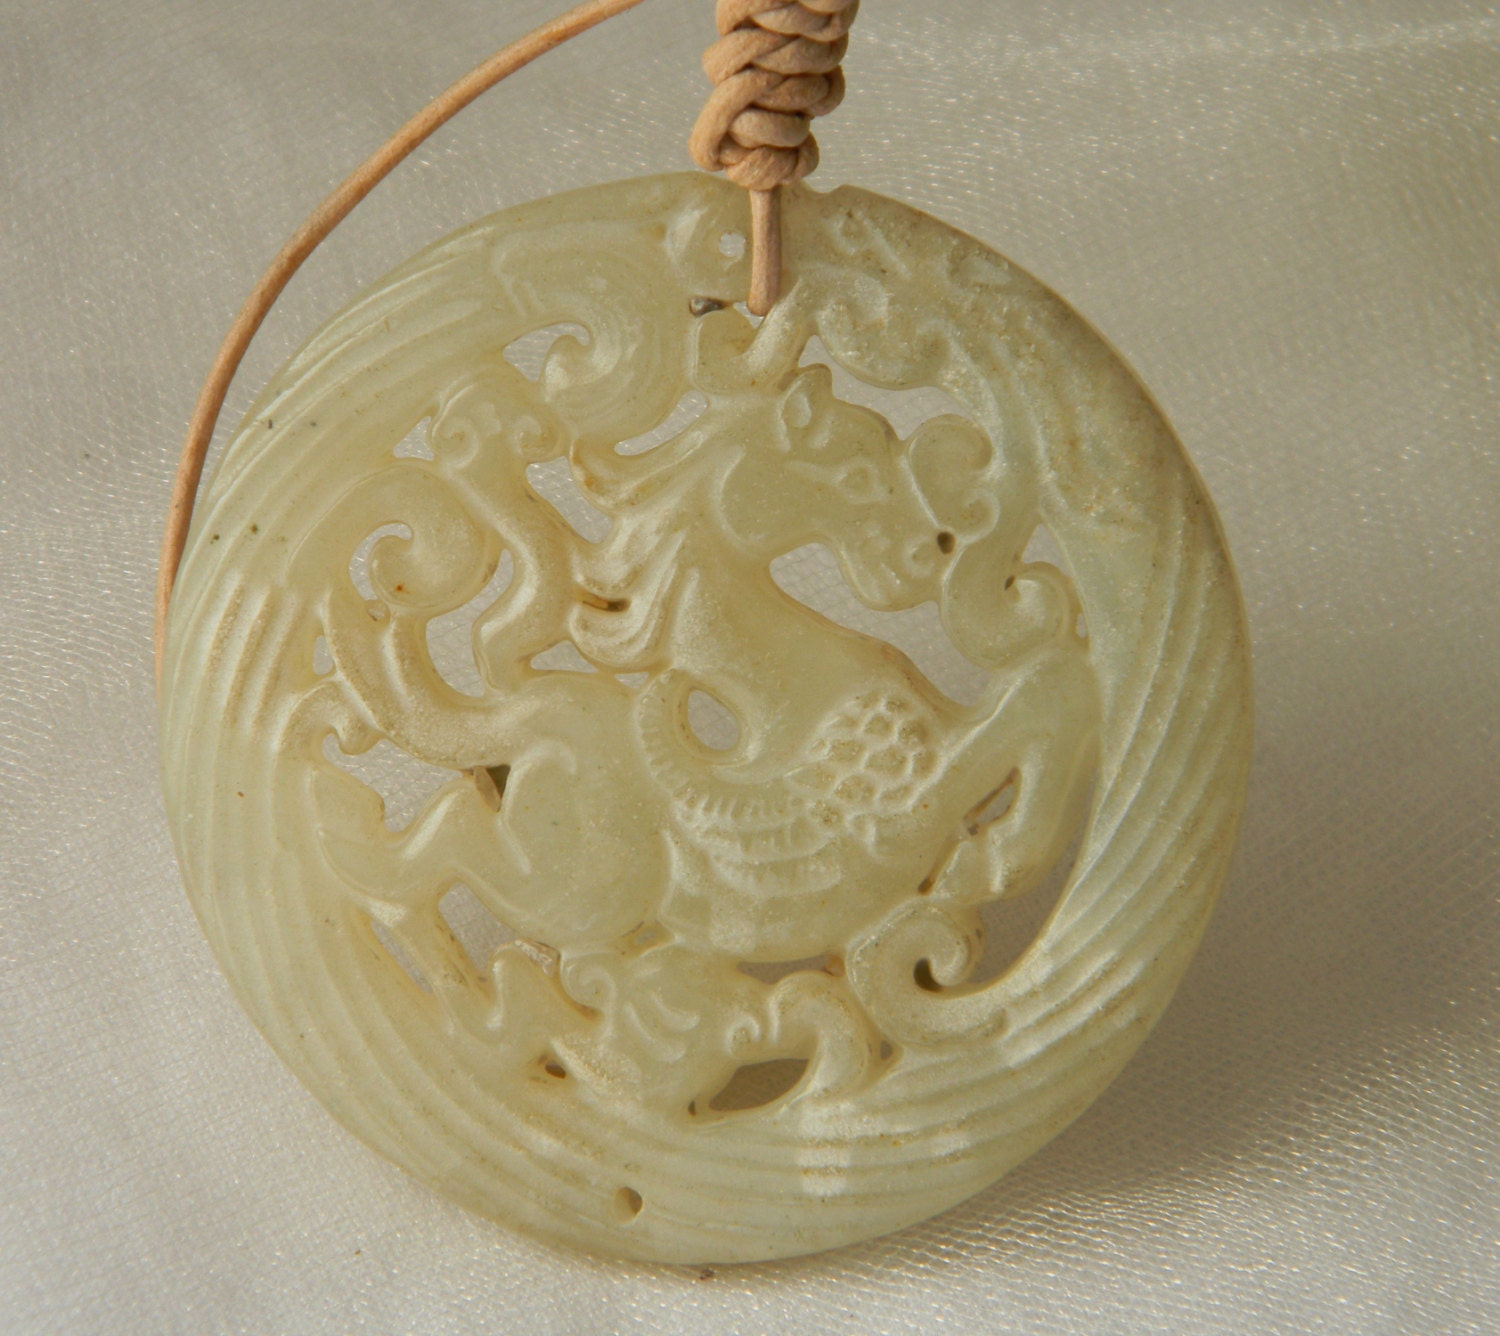 Jade Horse Pendant W Leather Cord Necklace Beaded Jewelry